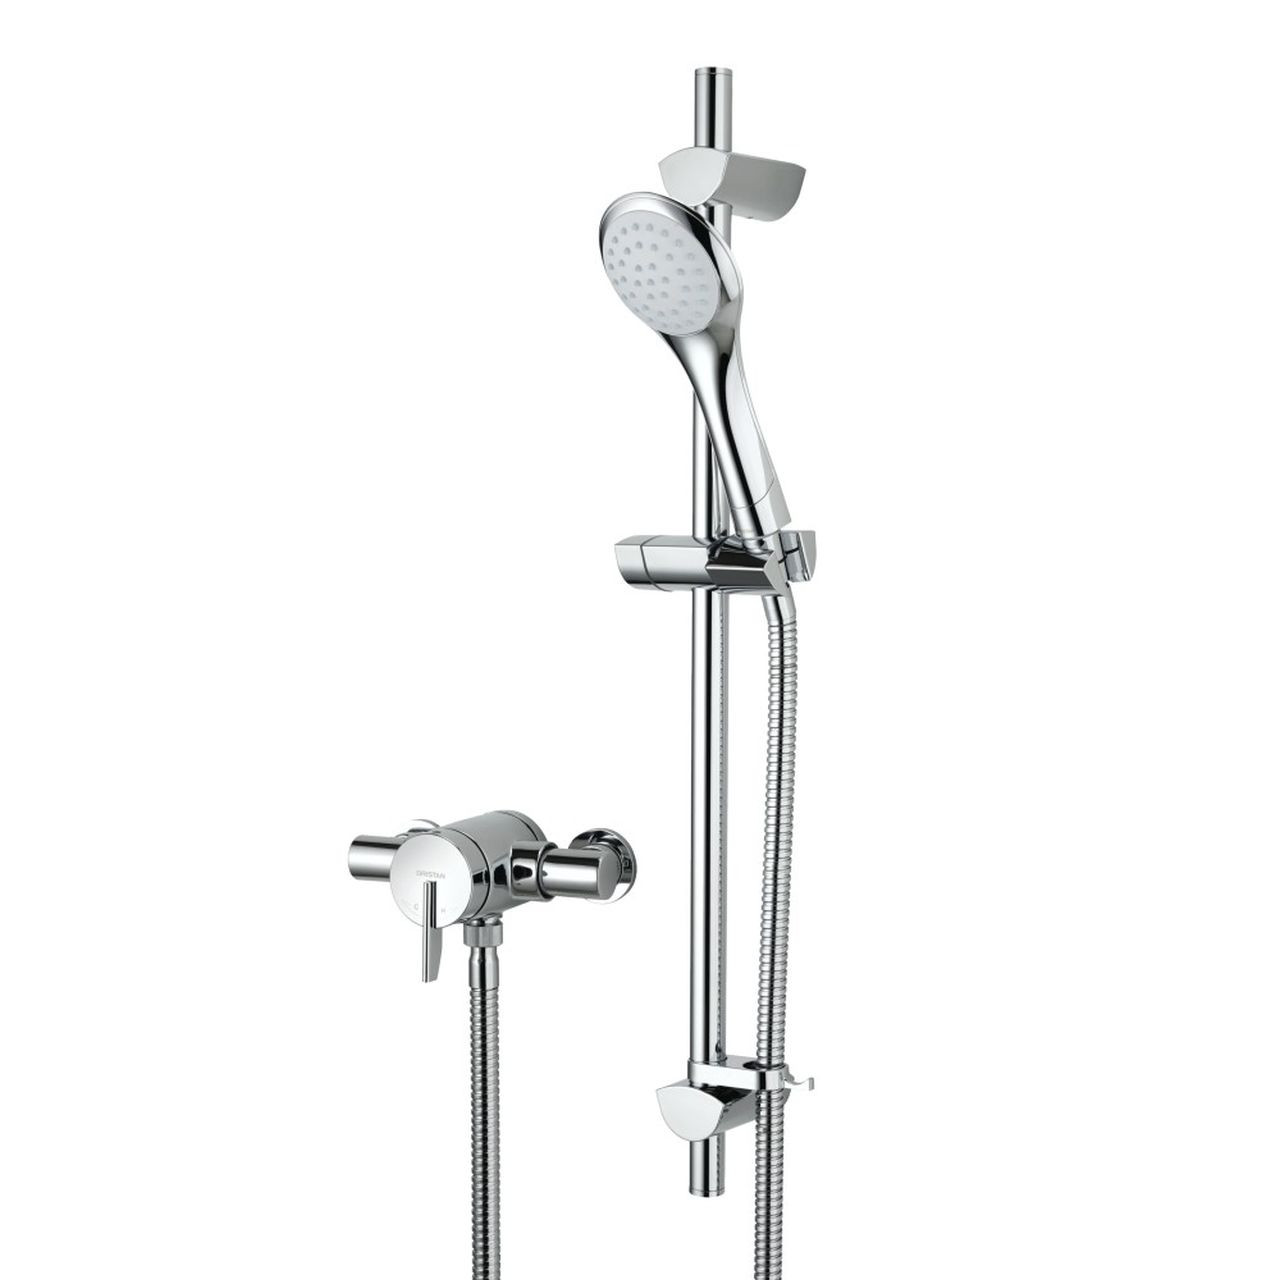 Bristan Sonique 2 Chrome Thermostatic Surface Mounted Shower Valve with Adjustable Riser - SOQ2-SHXAR-C